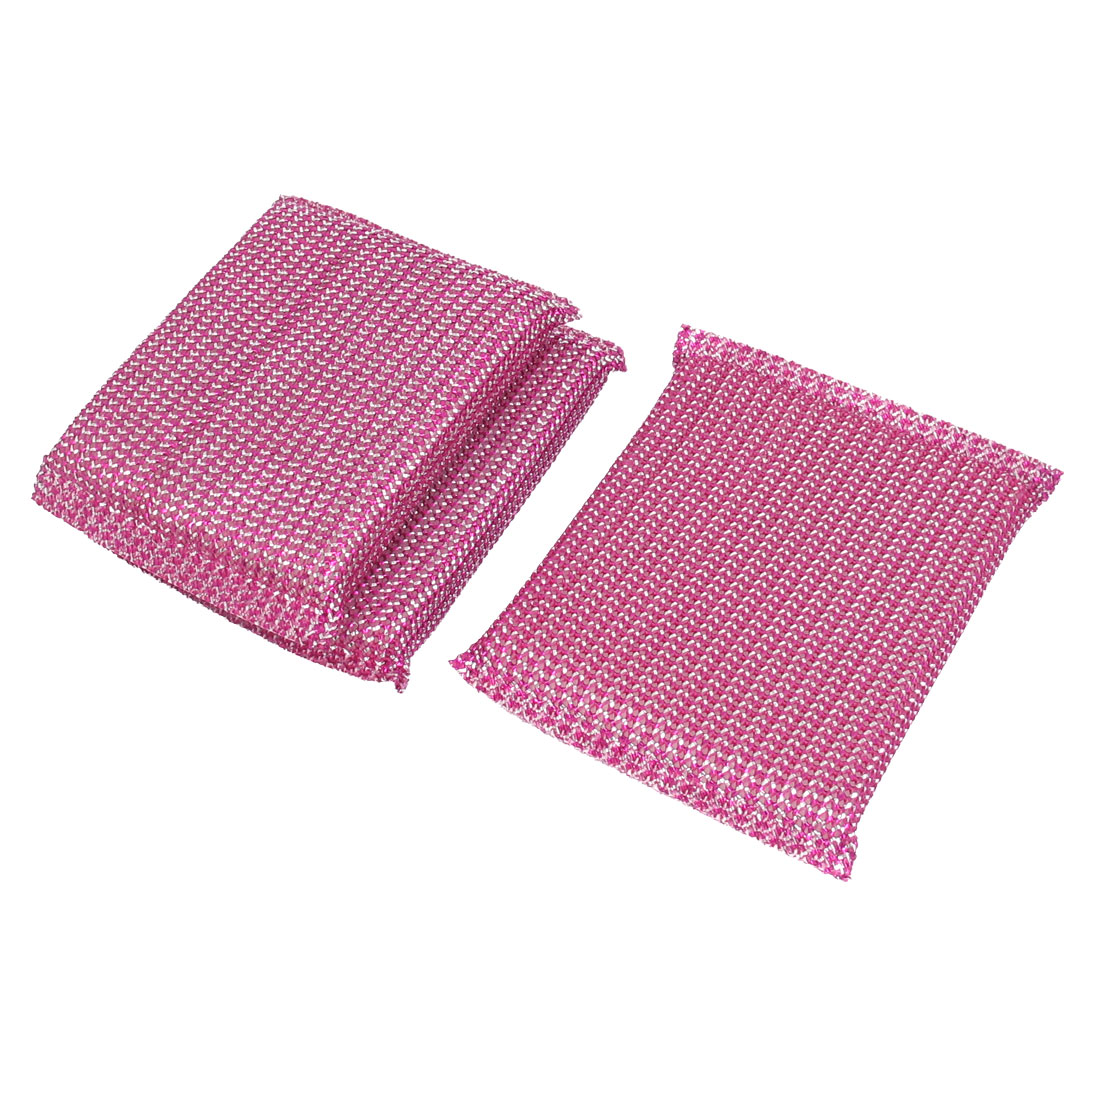 Kitchen Dish Bowl Pot Cup Cleaner Sponge Scrub Pads Cleaning Tool Fuchsia 3pcs